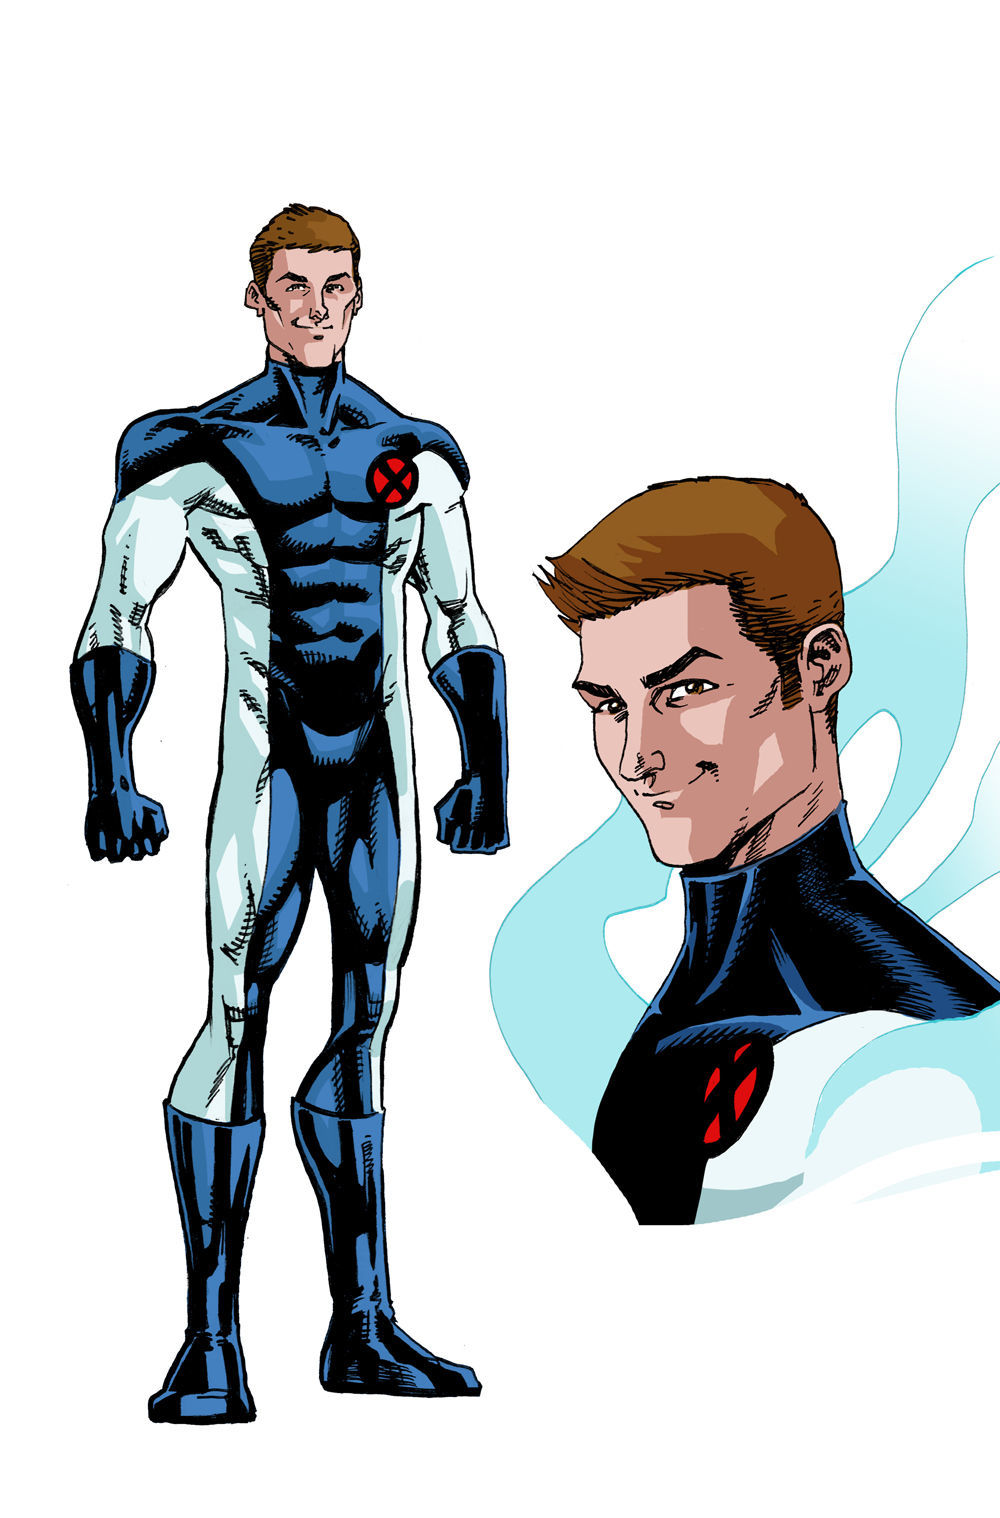 Iceman Art - Marvel